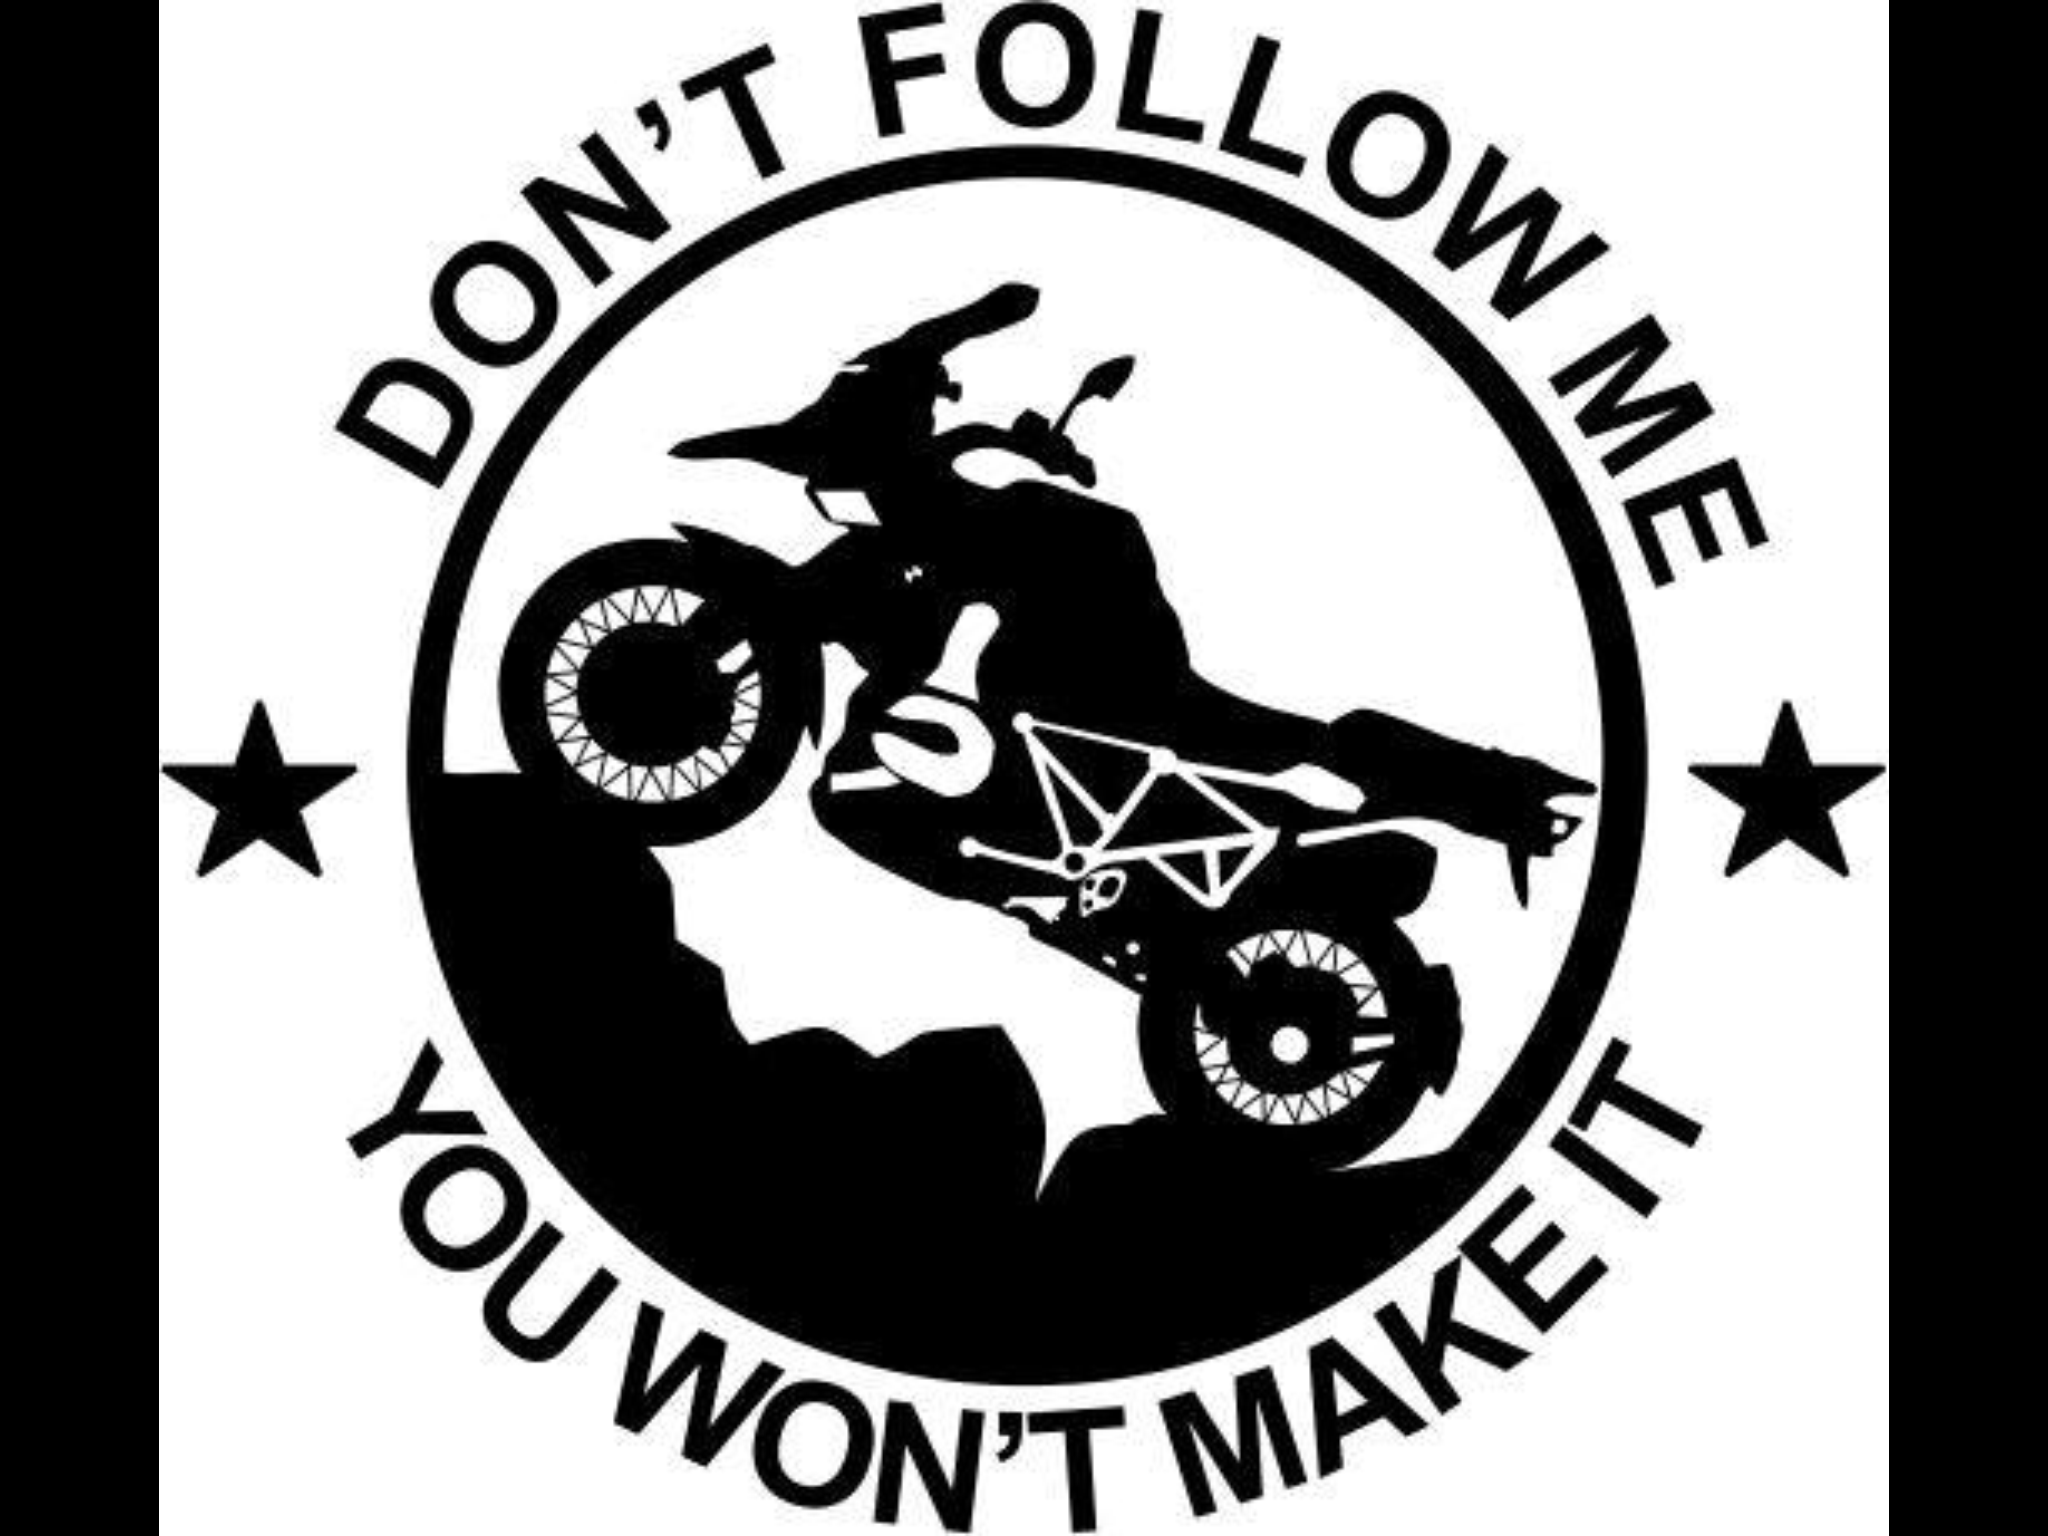 extreme gs rider decal motorbikes pinterest motorcycle BMW E46 extreme gs rider decal motorcycle decals motorcycle tattoos motorcycle humor motorcycle posters